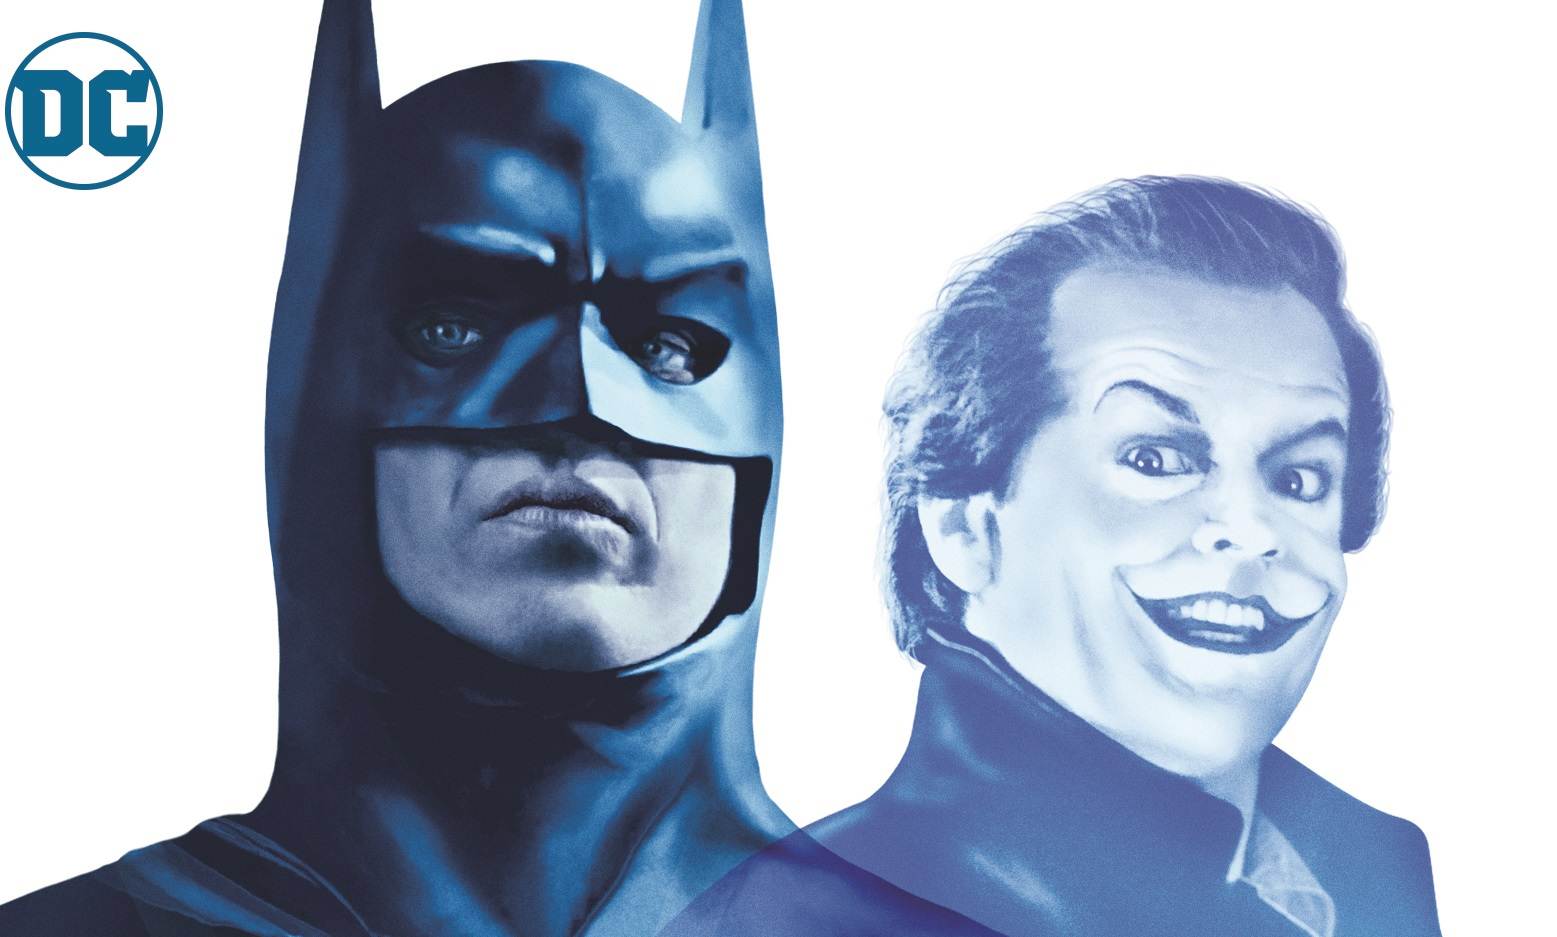 [News] Warner Bros. Celebrates 80th Anniversary of BATMAN